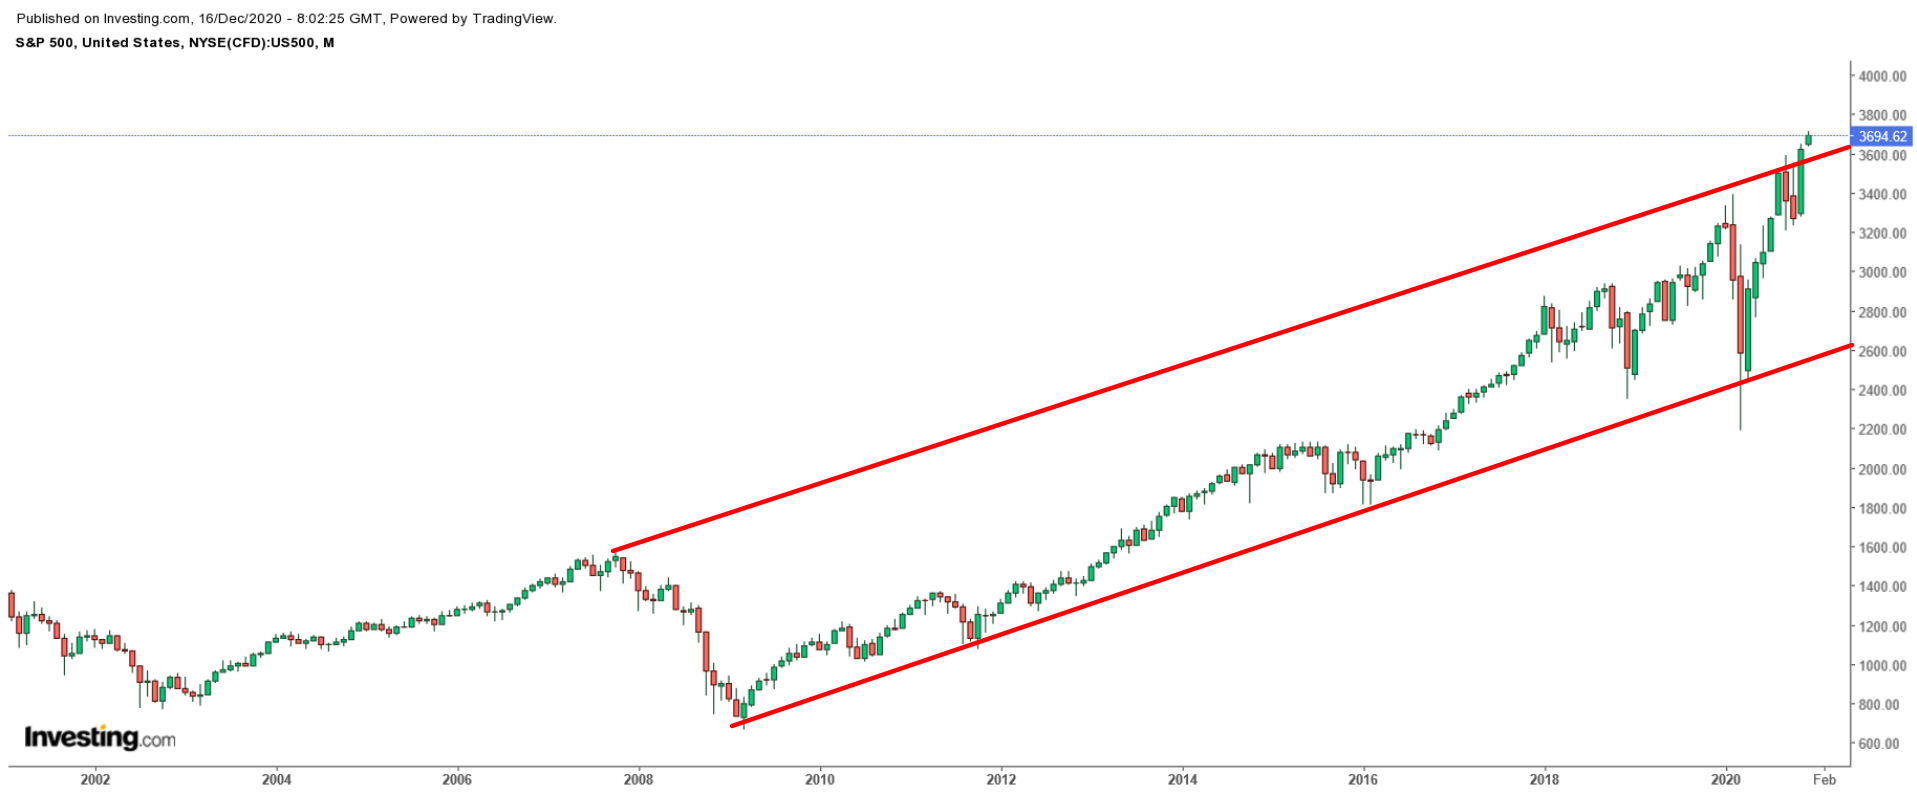 SPX Monthly 2000-2020